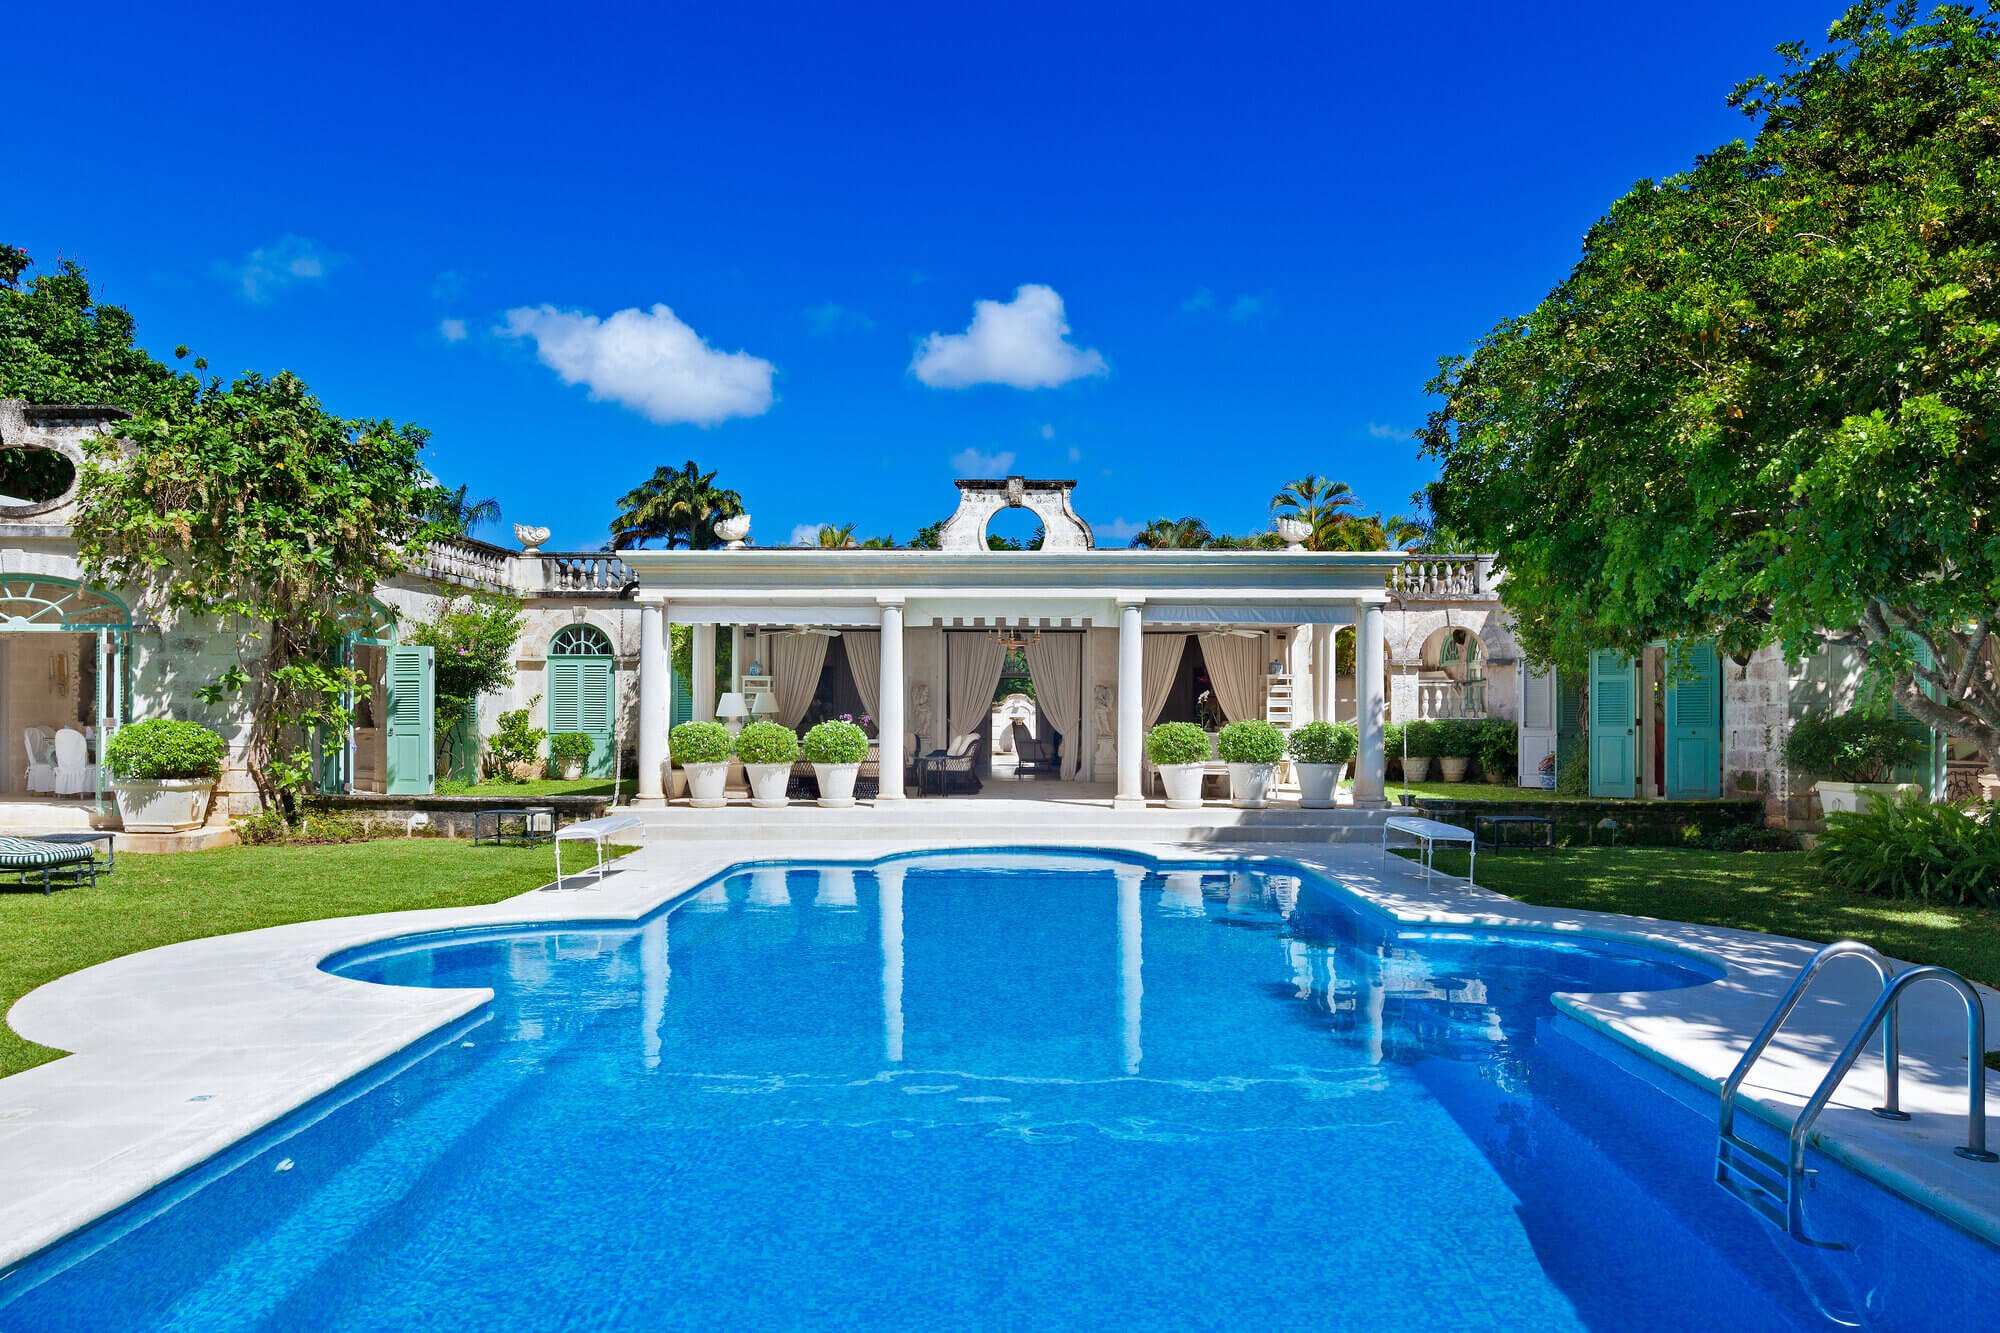 Our staffed Caribbean villas promise 5-star luxury